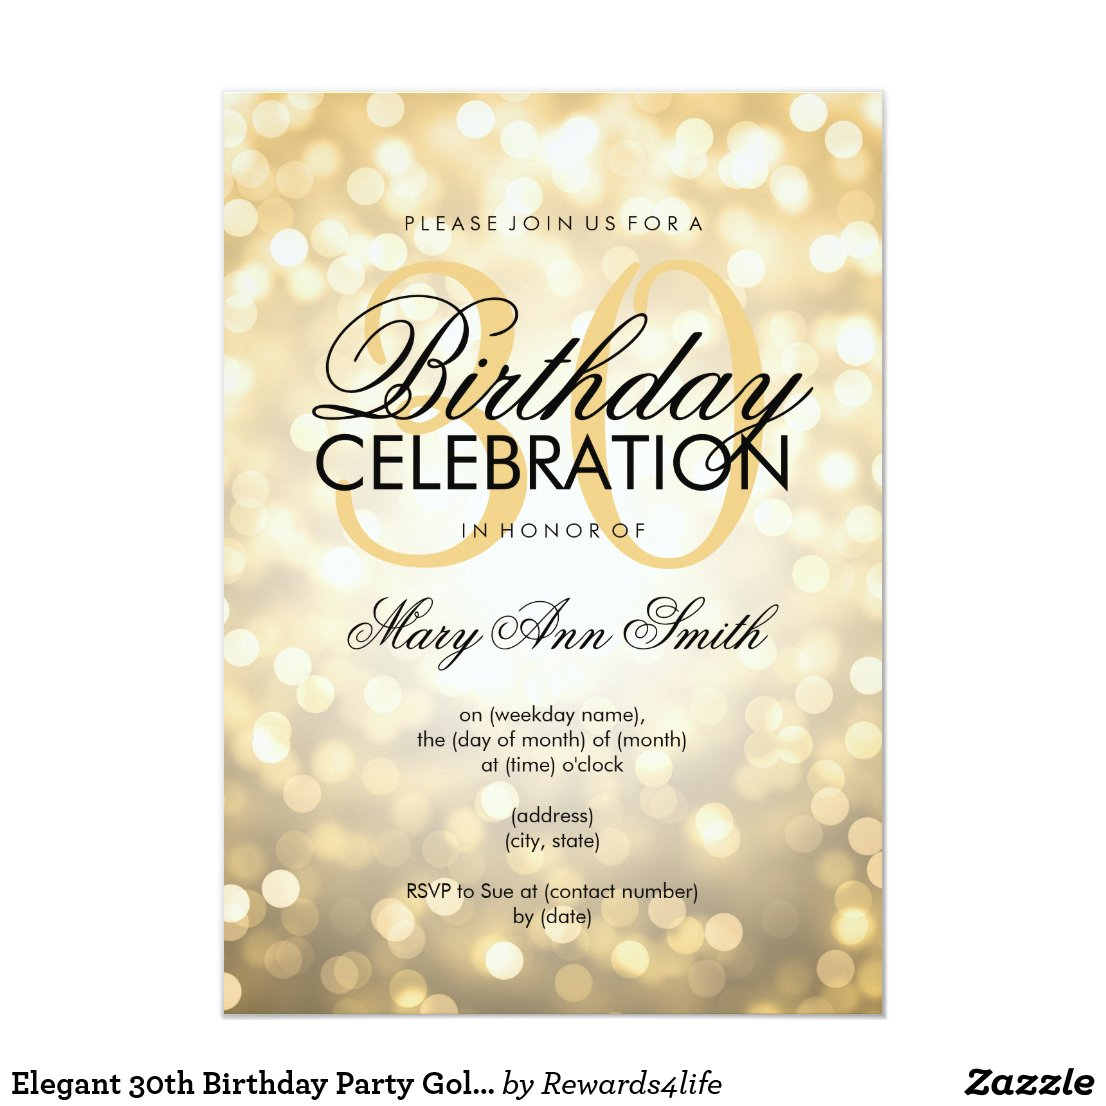 Elegant 30th Birthday Party Gold Glitter Lights Invitation